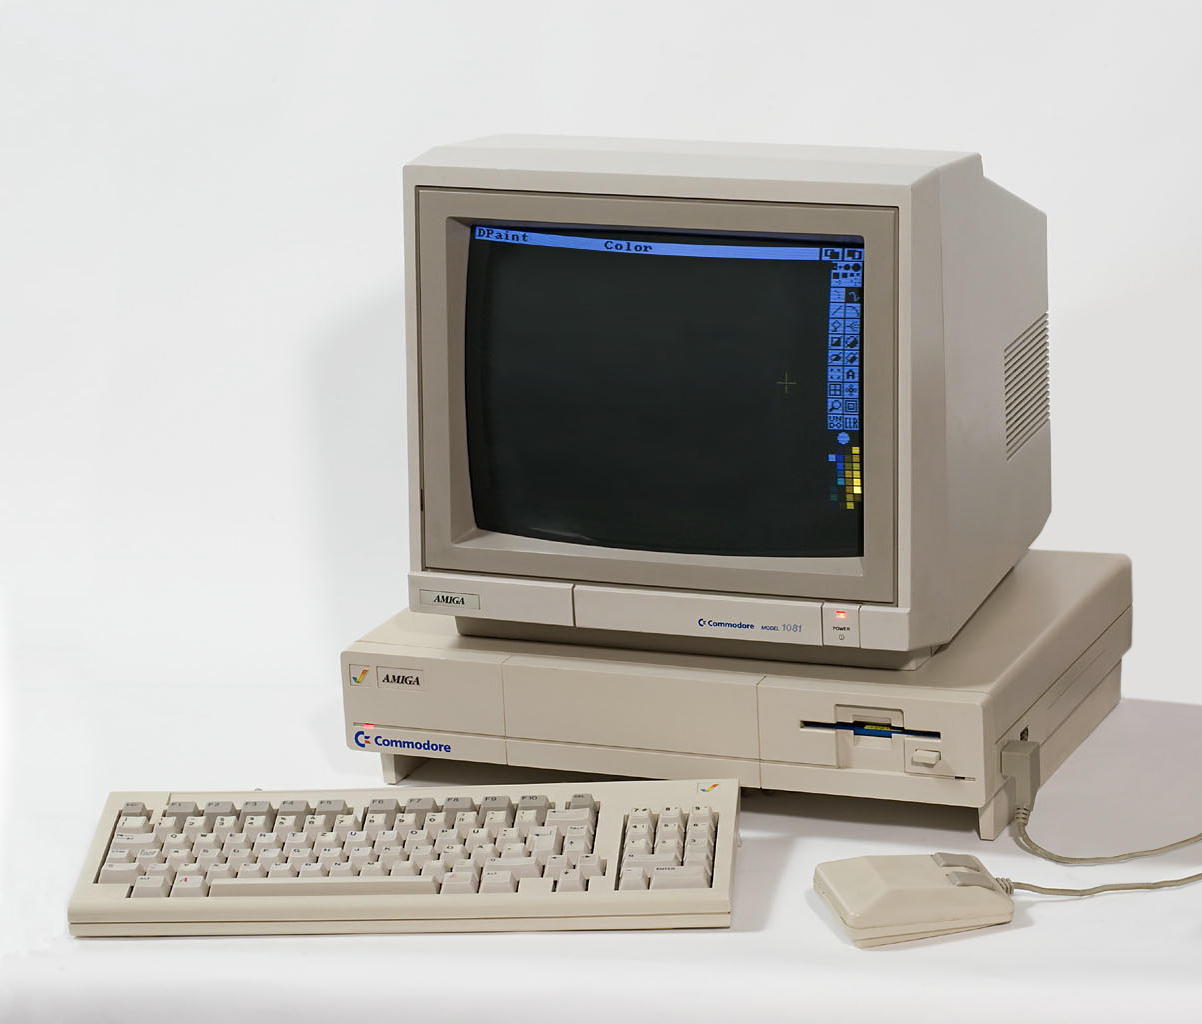 The Commodore Amiga